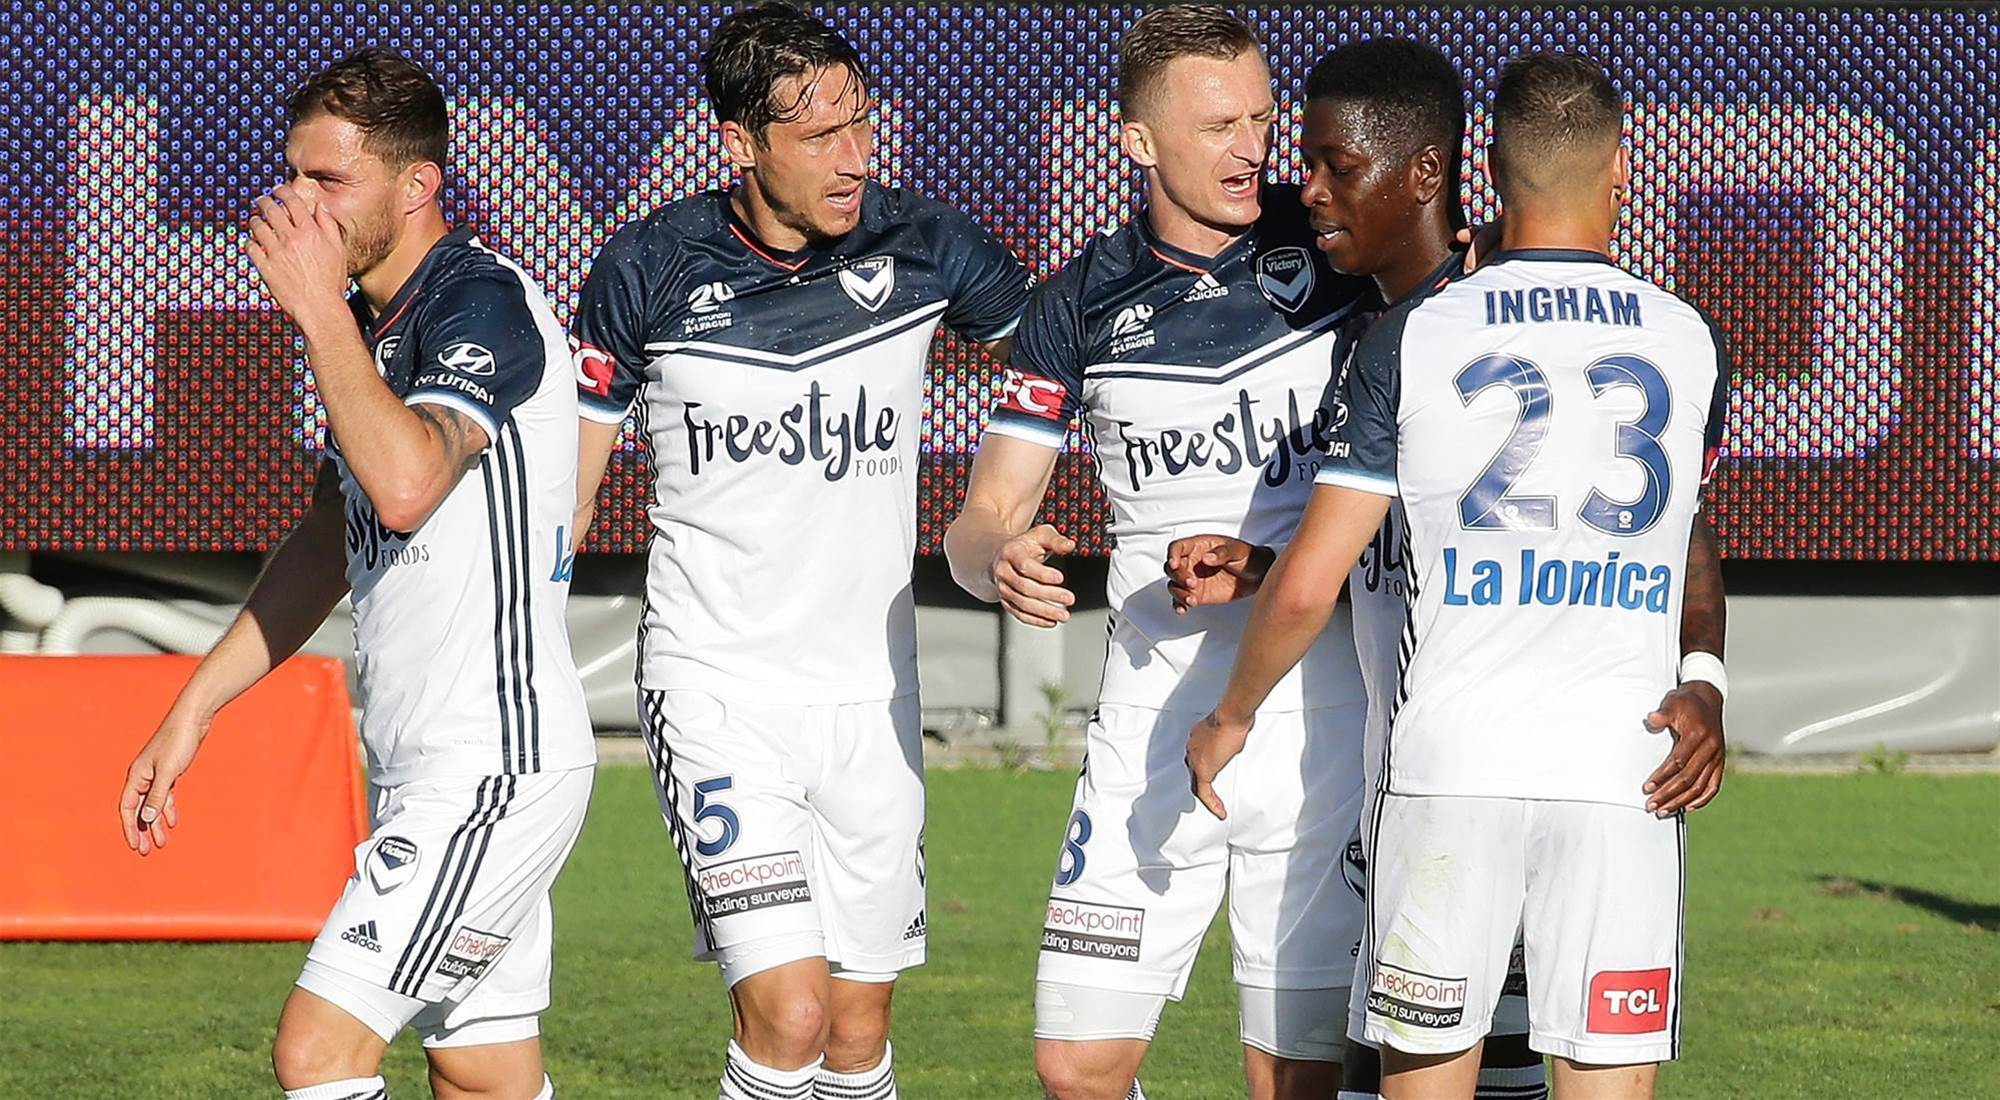 Melbourne Victory win, Socceroos through - that was some week, says Milligan